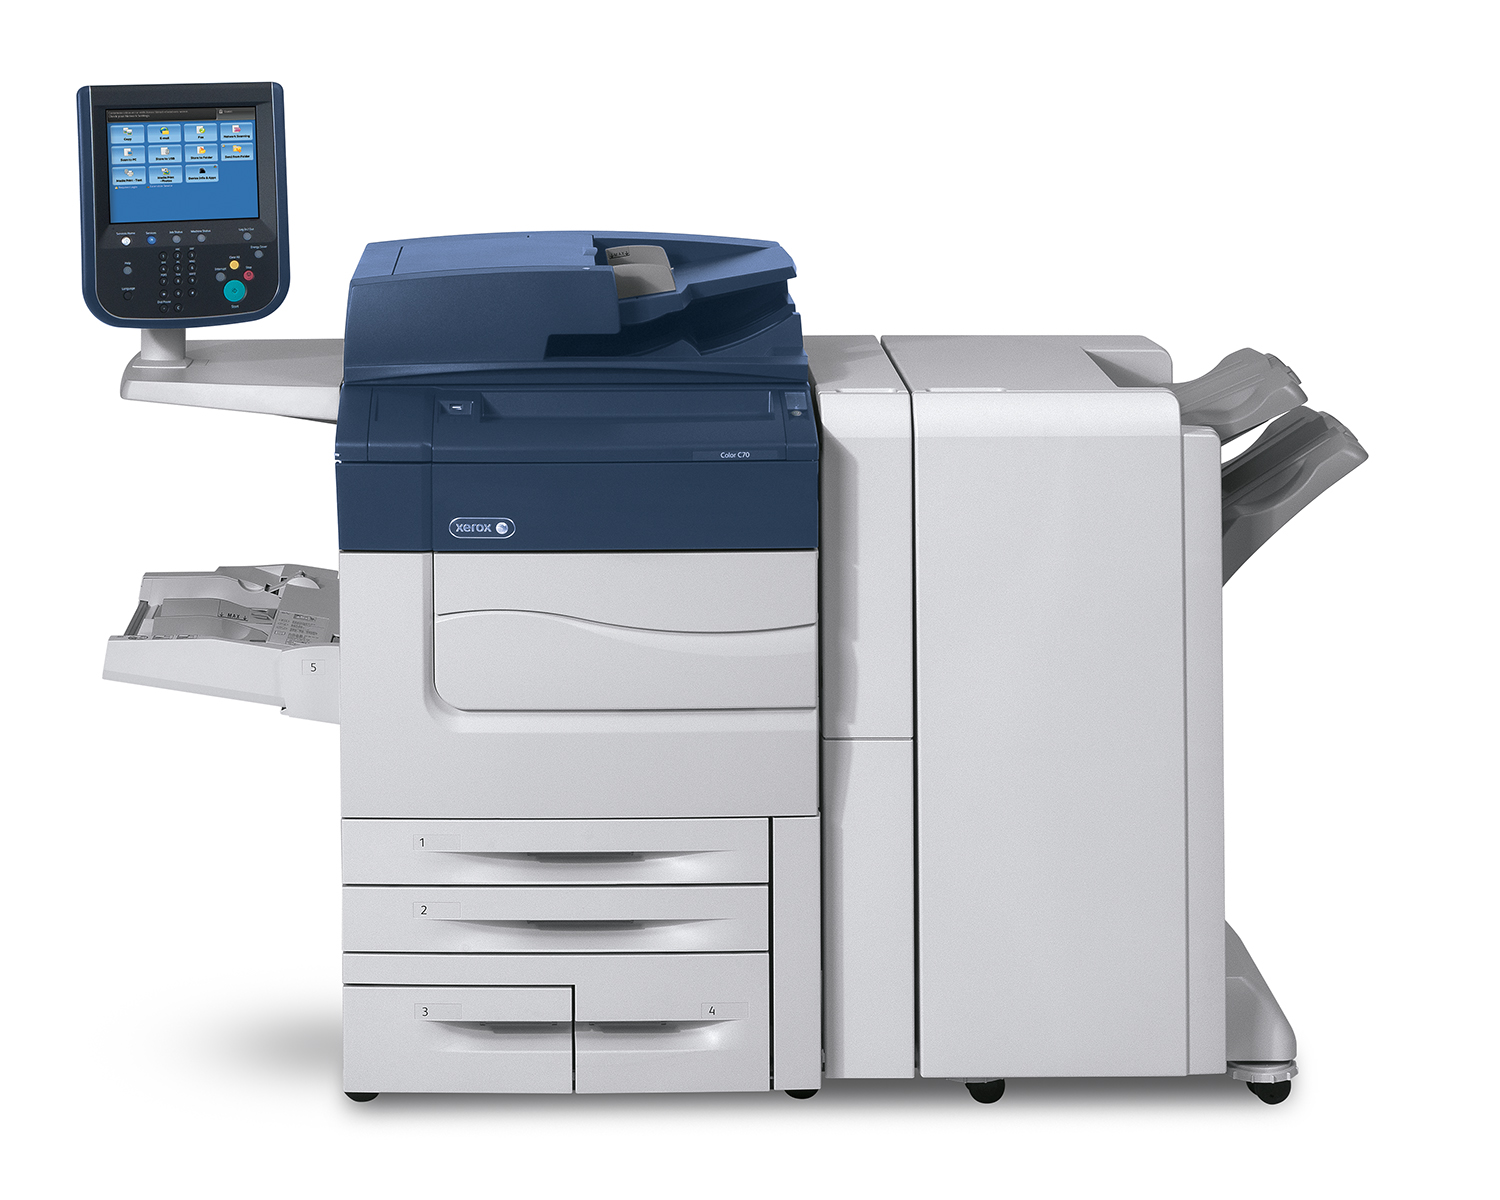 xerox 560 Copy Machine Leasing 25.95065 -80.12282